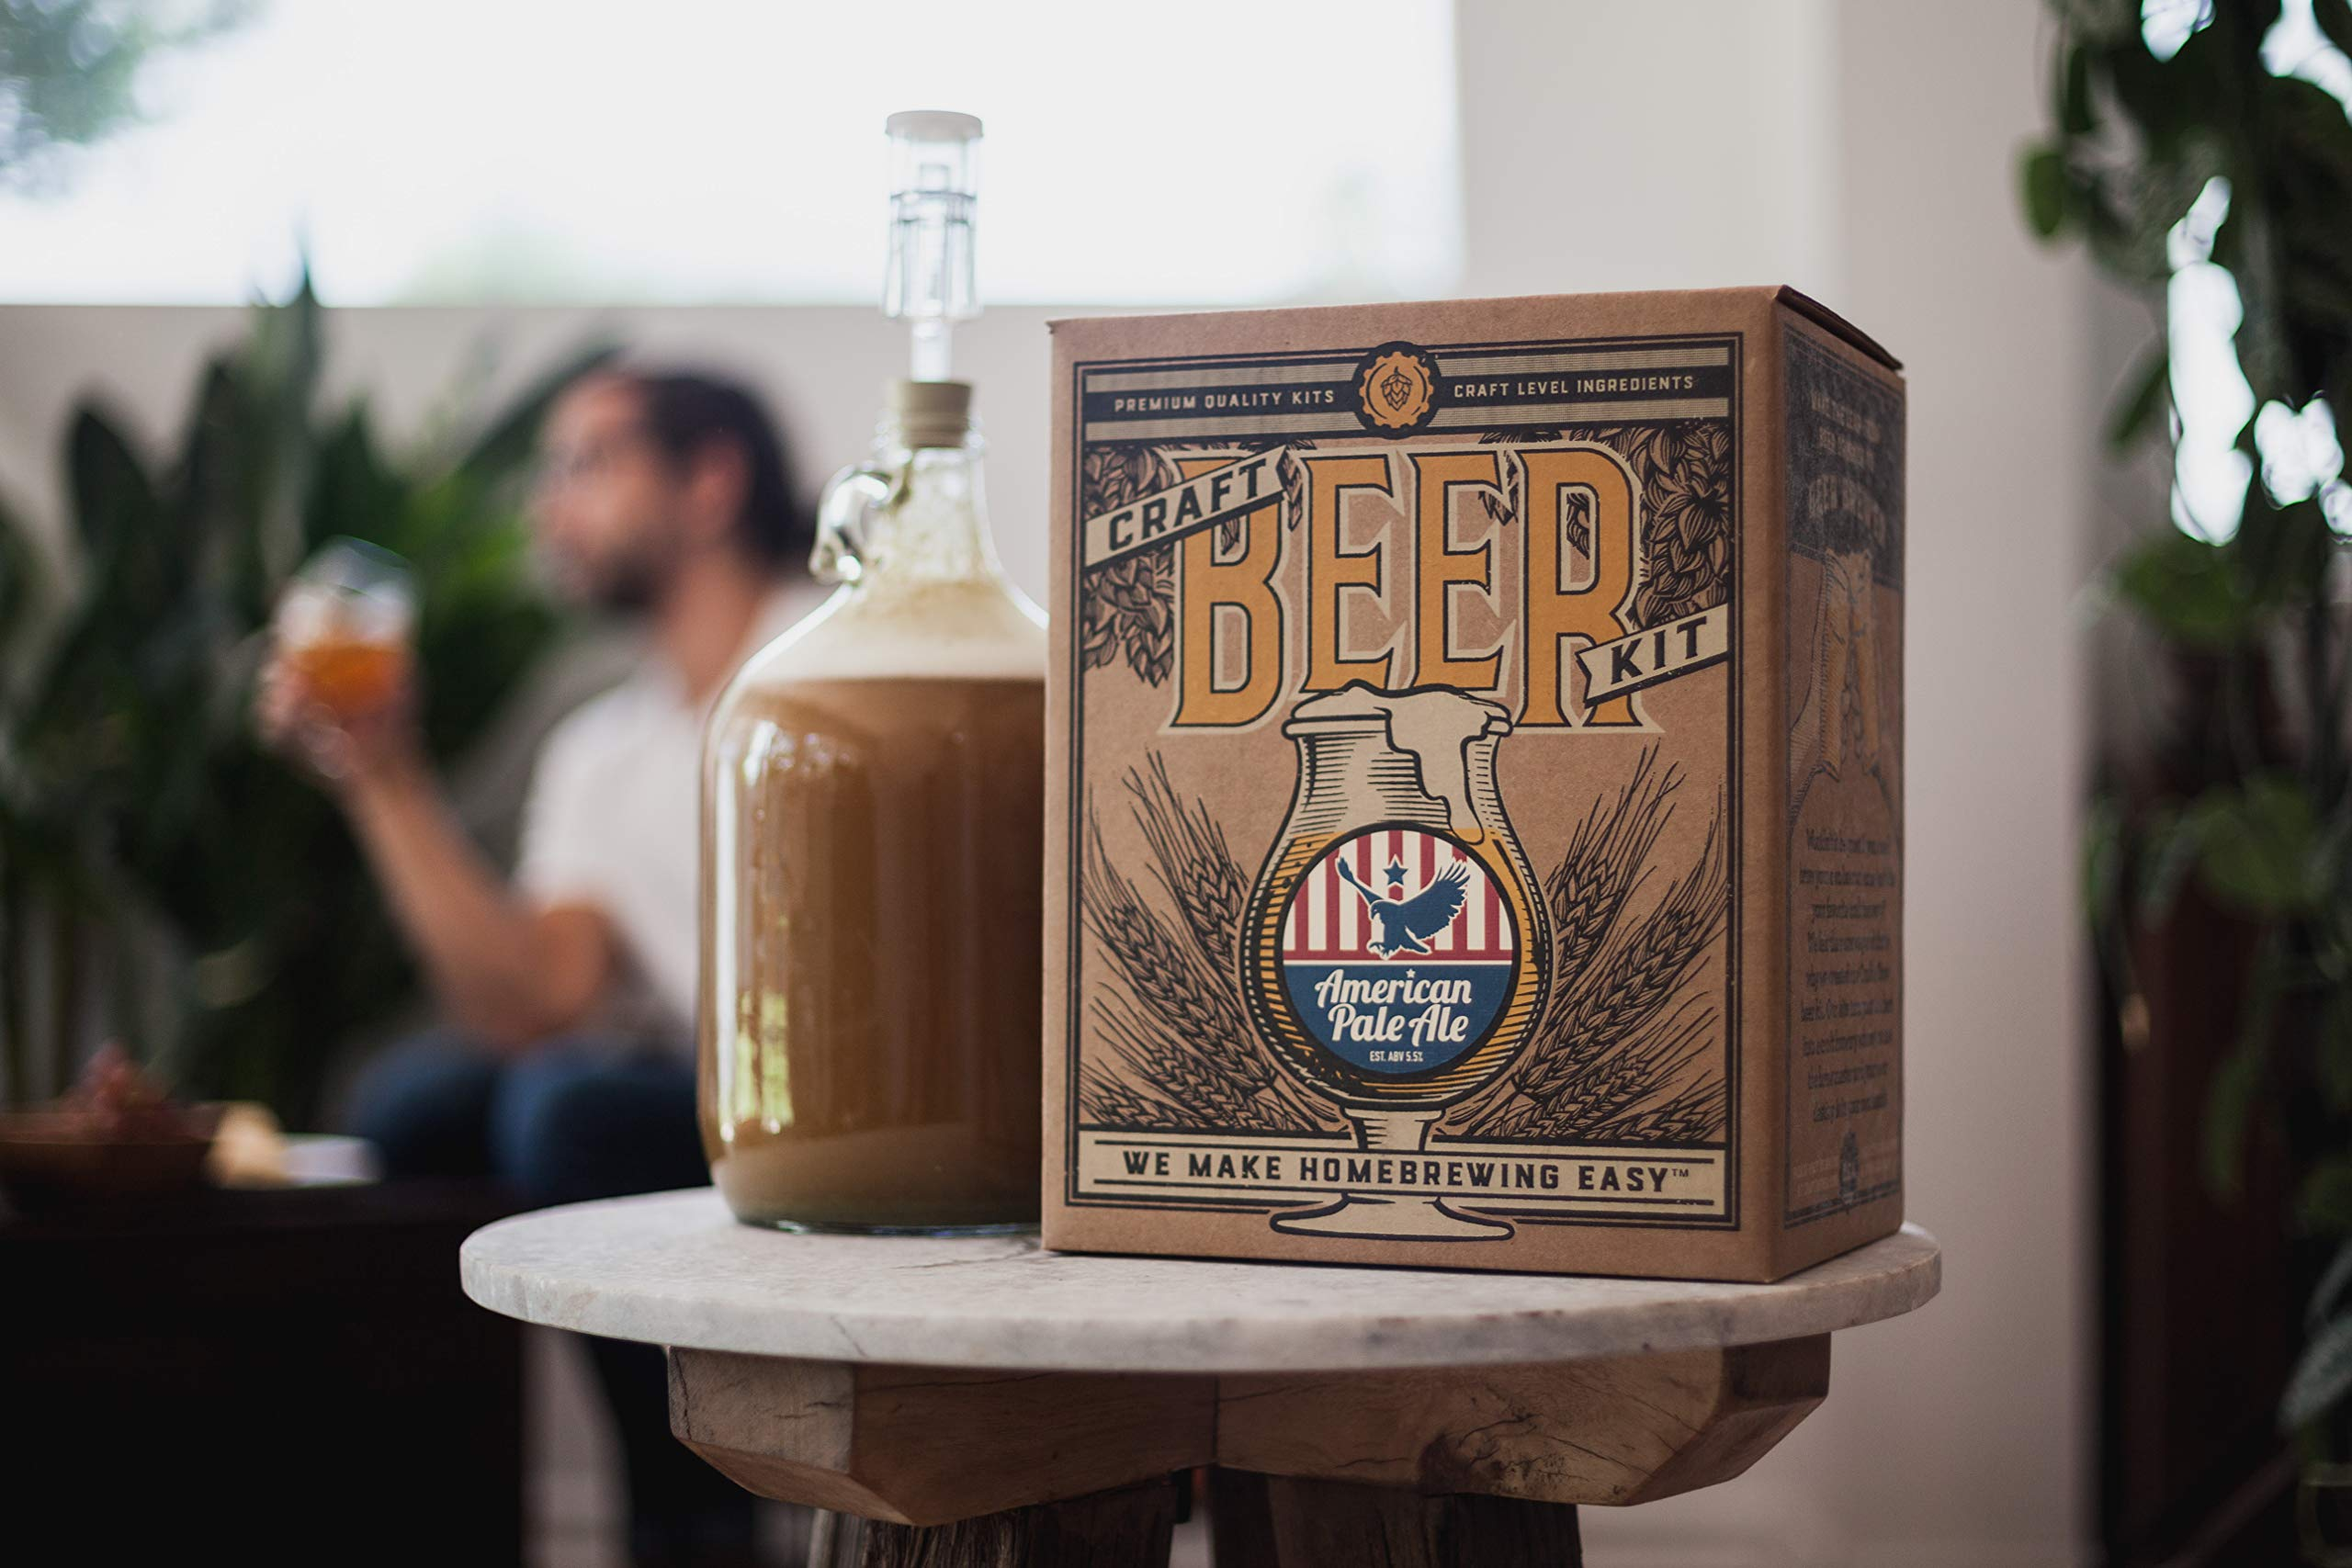 Home Brewing Kit for Beer - Craft A Brew Oktoberfest Ale Beer Kit - Reusable Make Your Own Beer Kit - Starter Set 1 Gallon by Craft A Brew (Image #4)